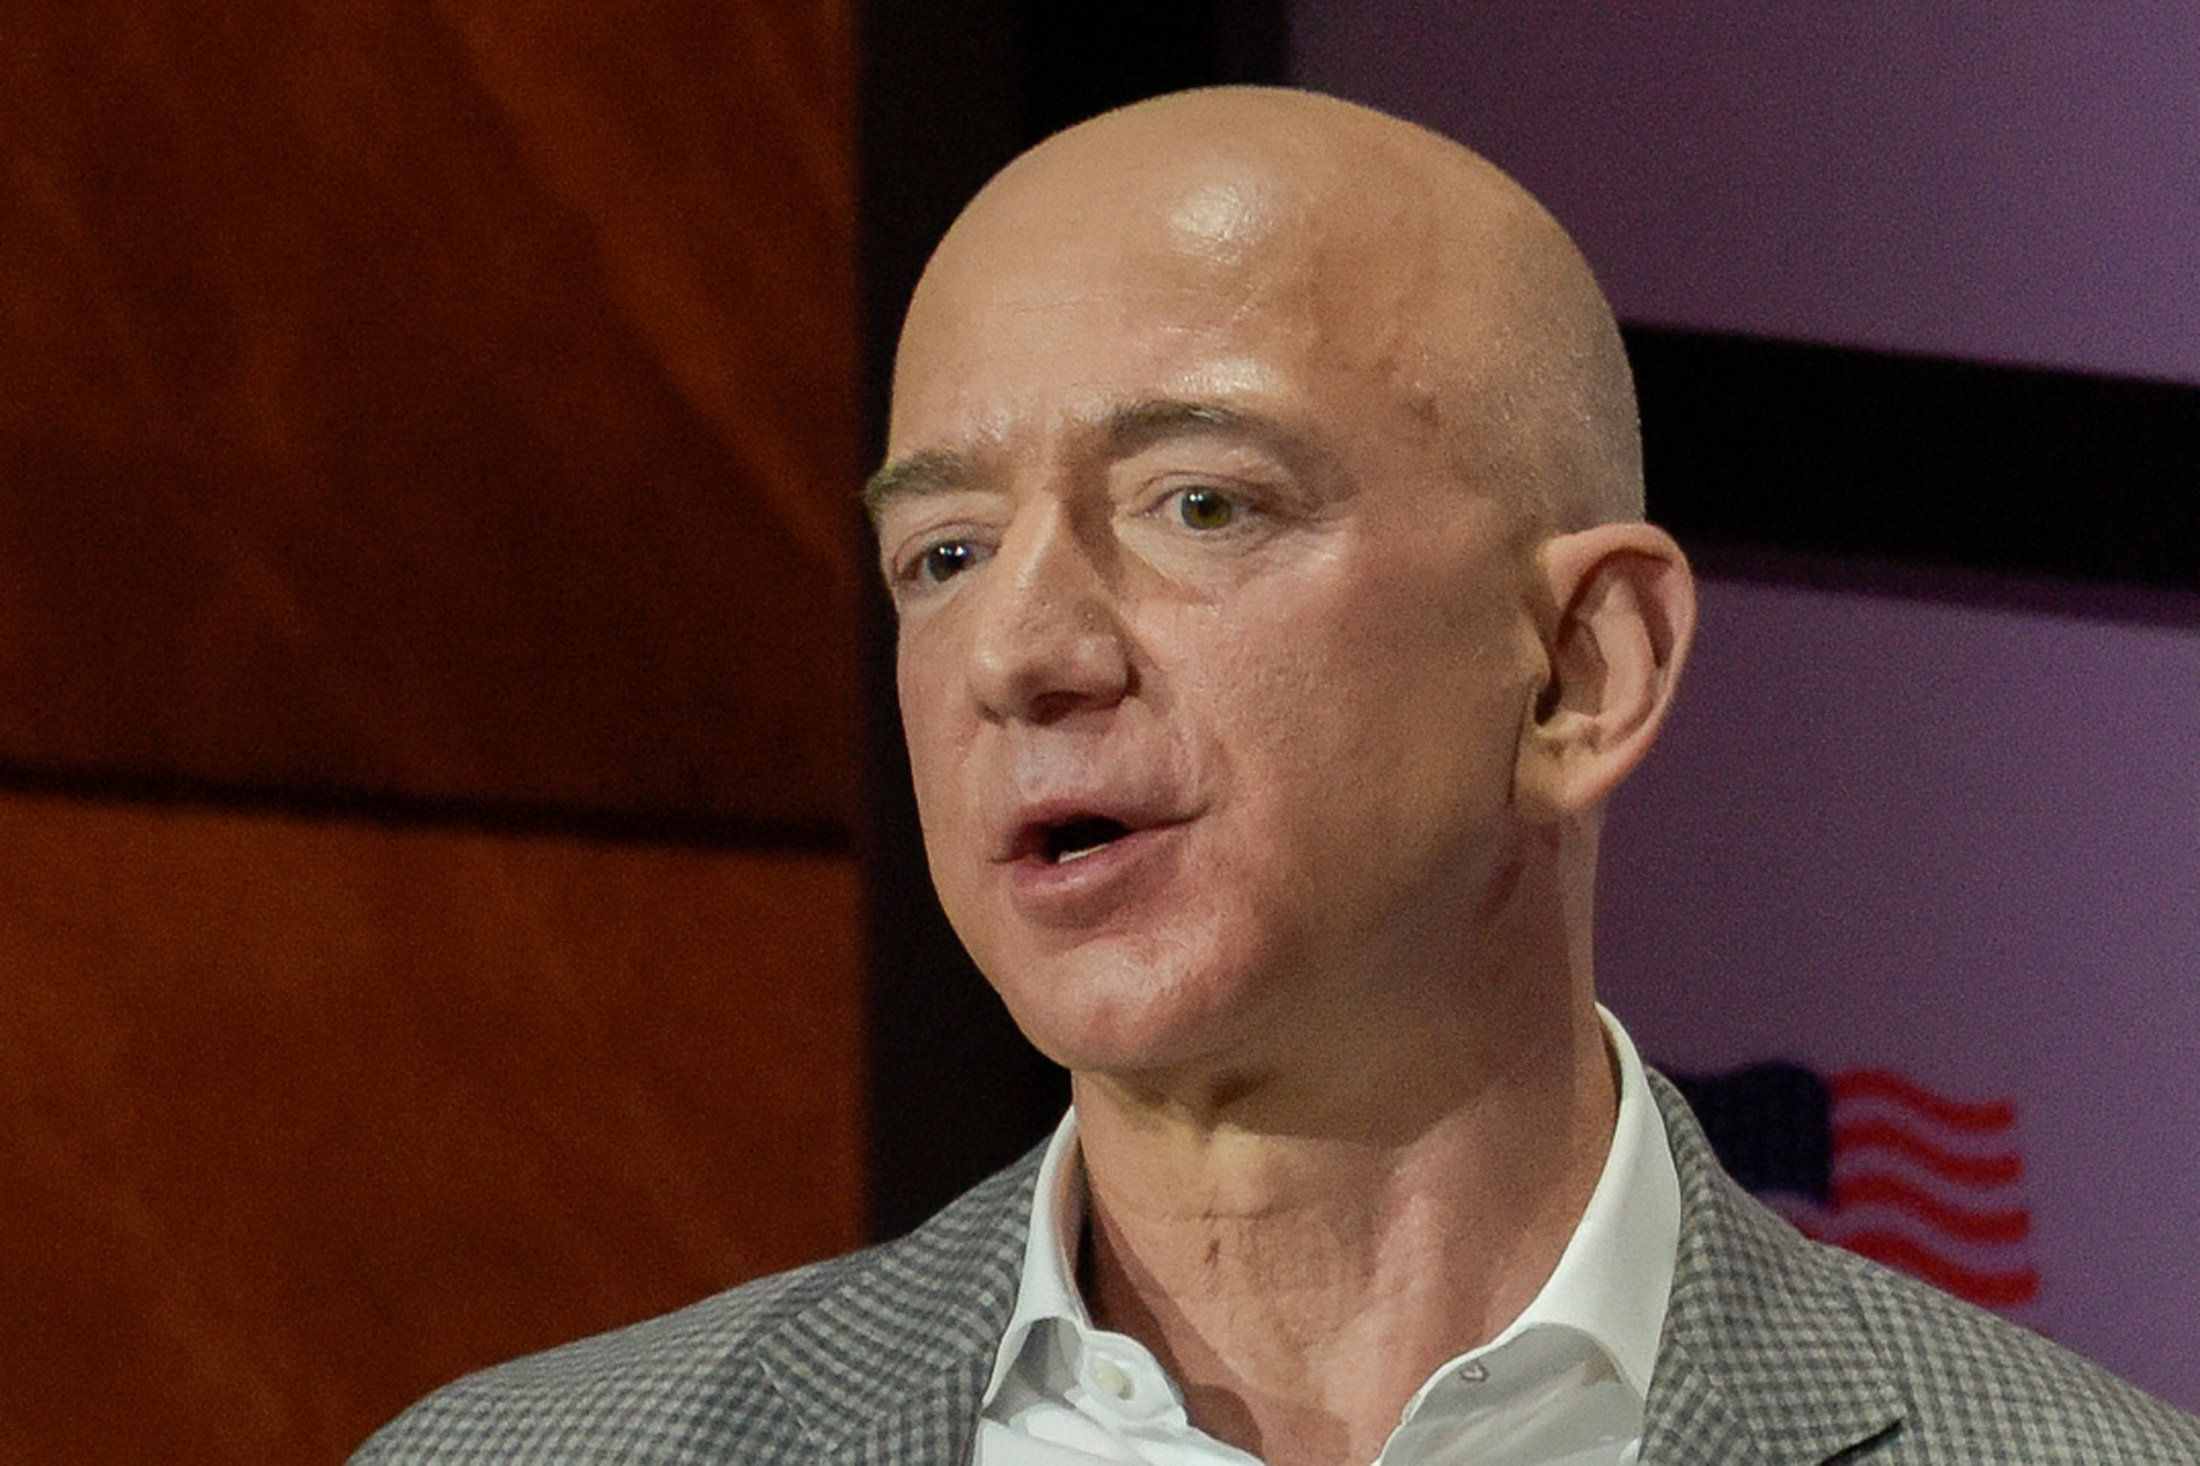 Amazon's Minimum Wage Hike Comes With Cuts To Other